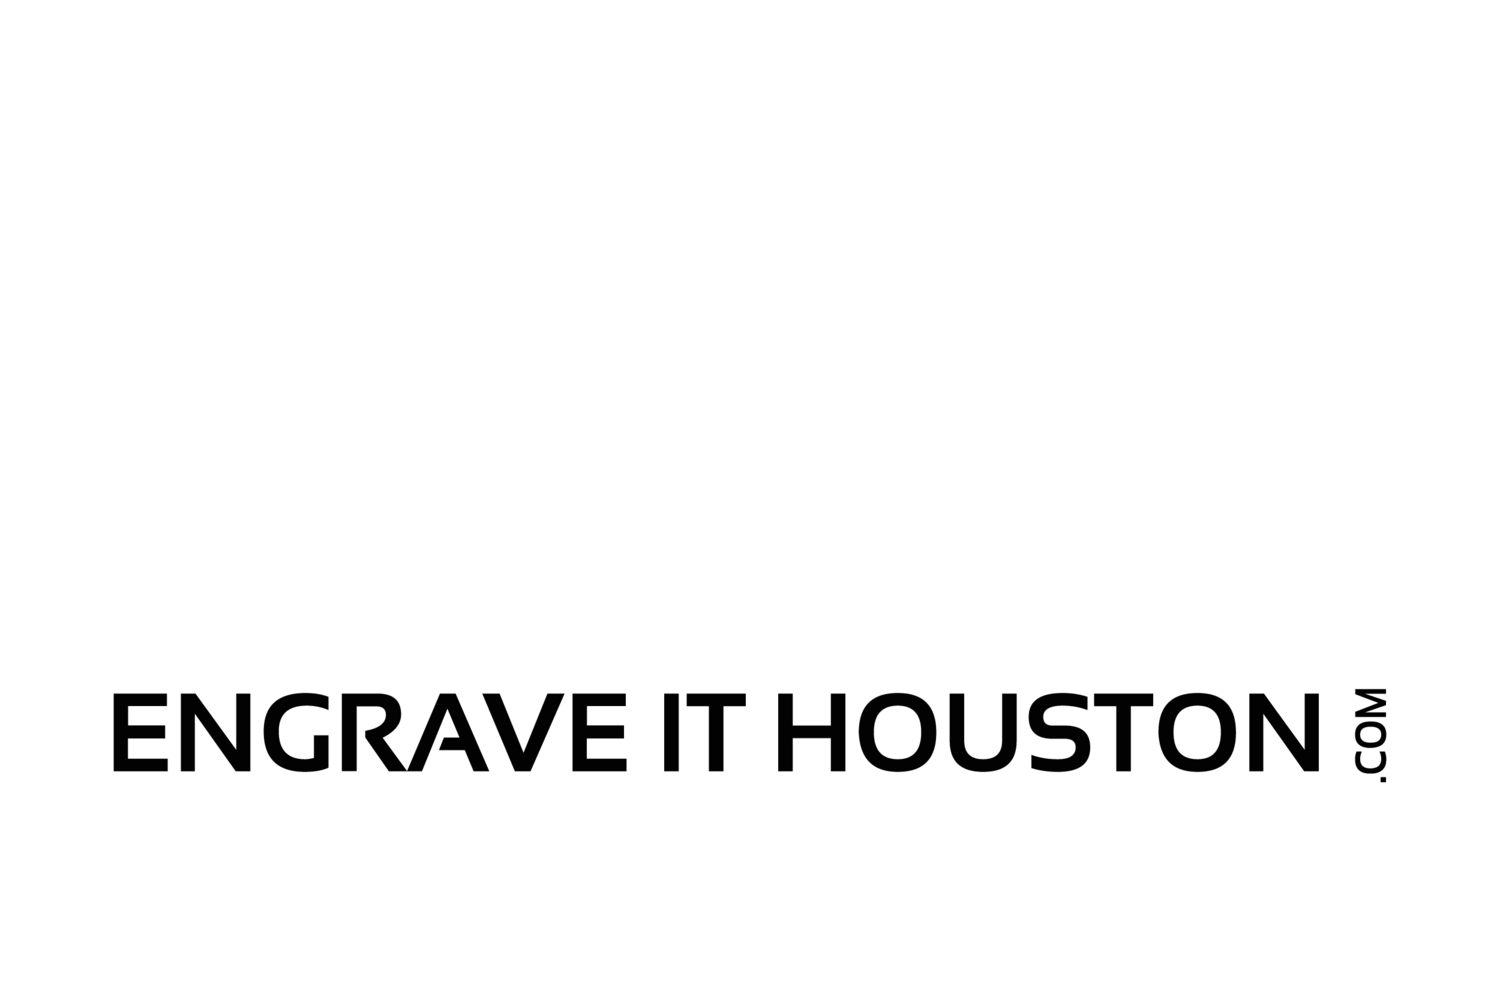 Engrave It Houston